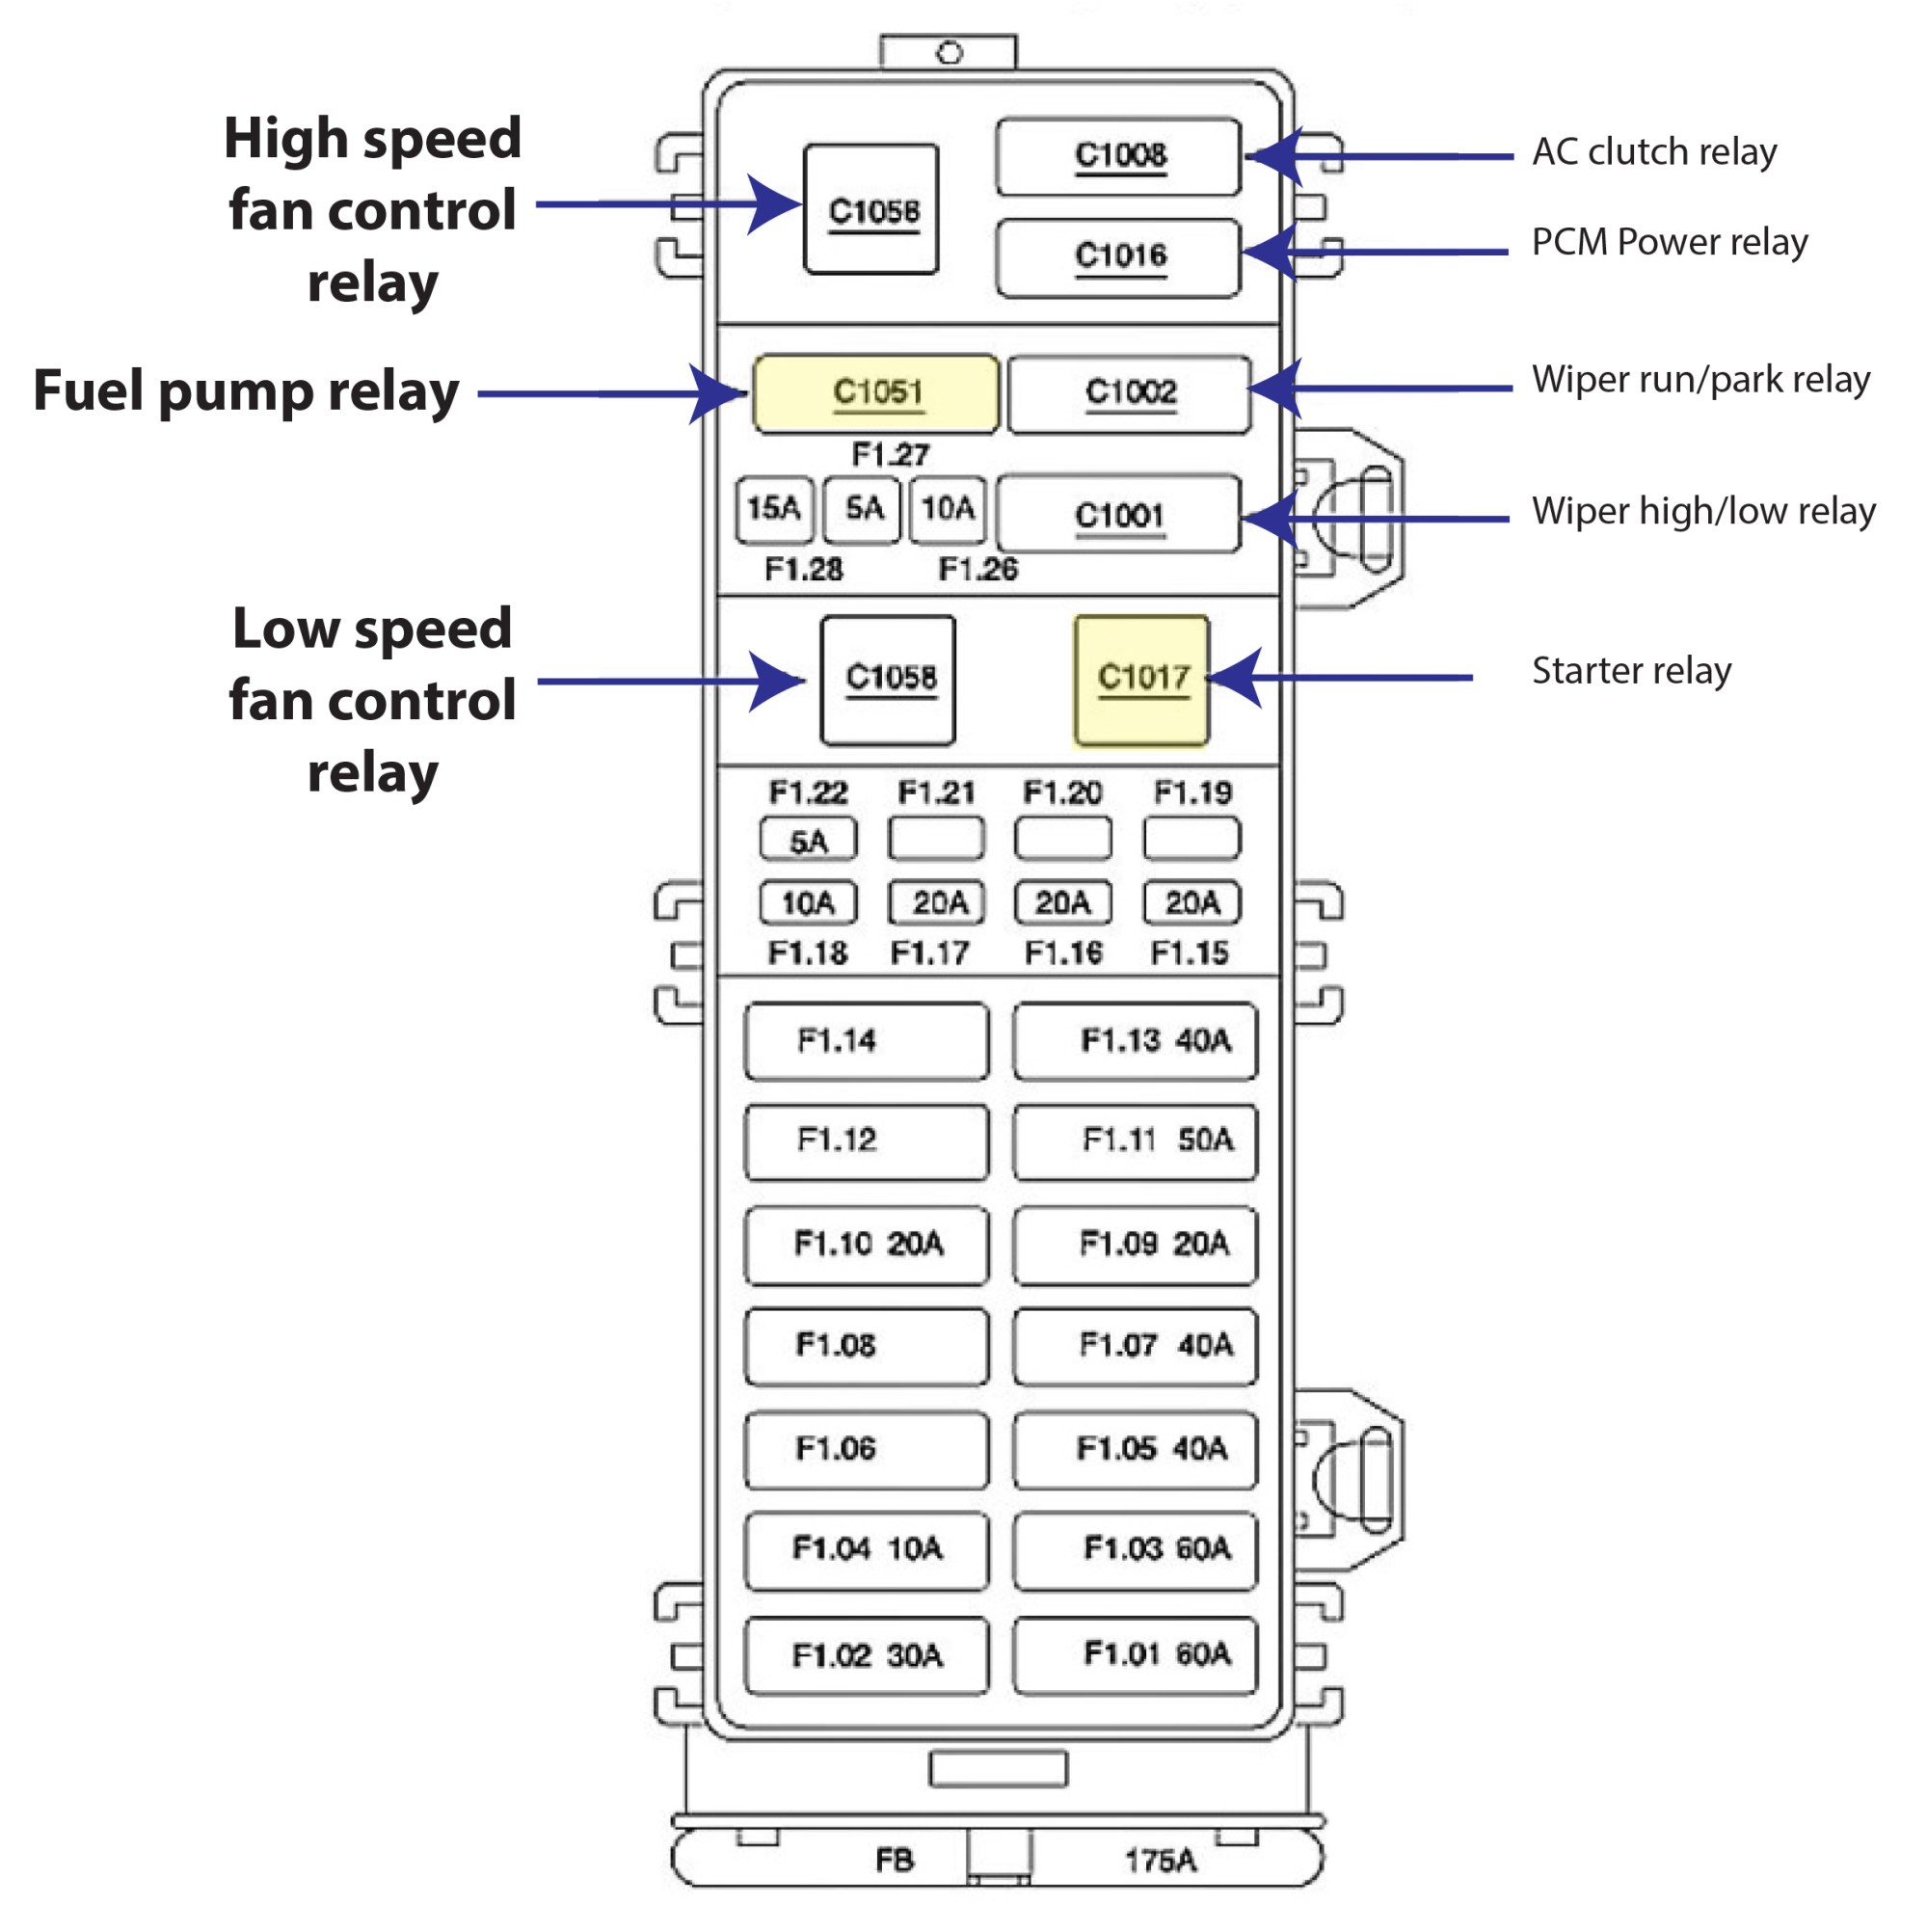 hight resolution of 2006 f250 fuse diagram central wiring diagram expert 2006 f250 fuse diagram central